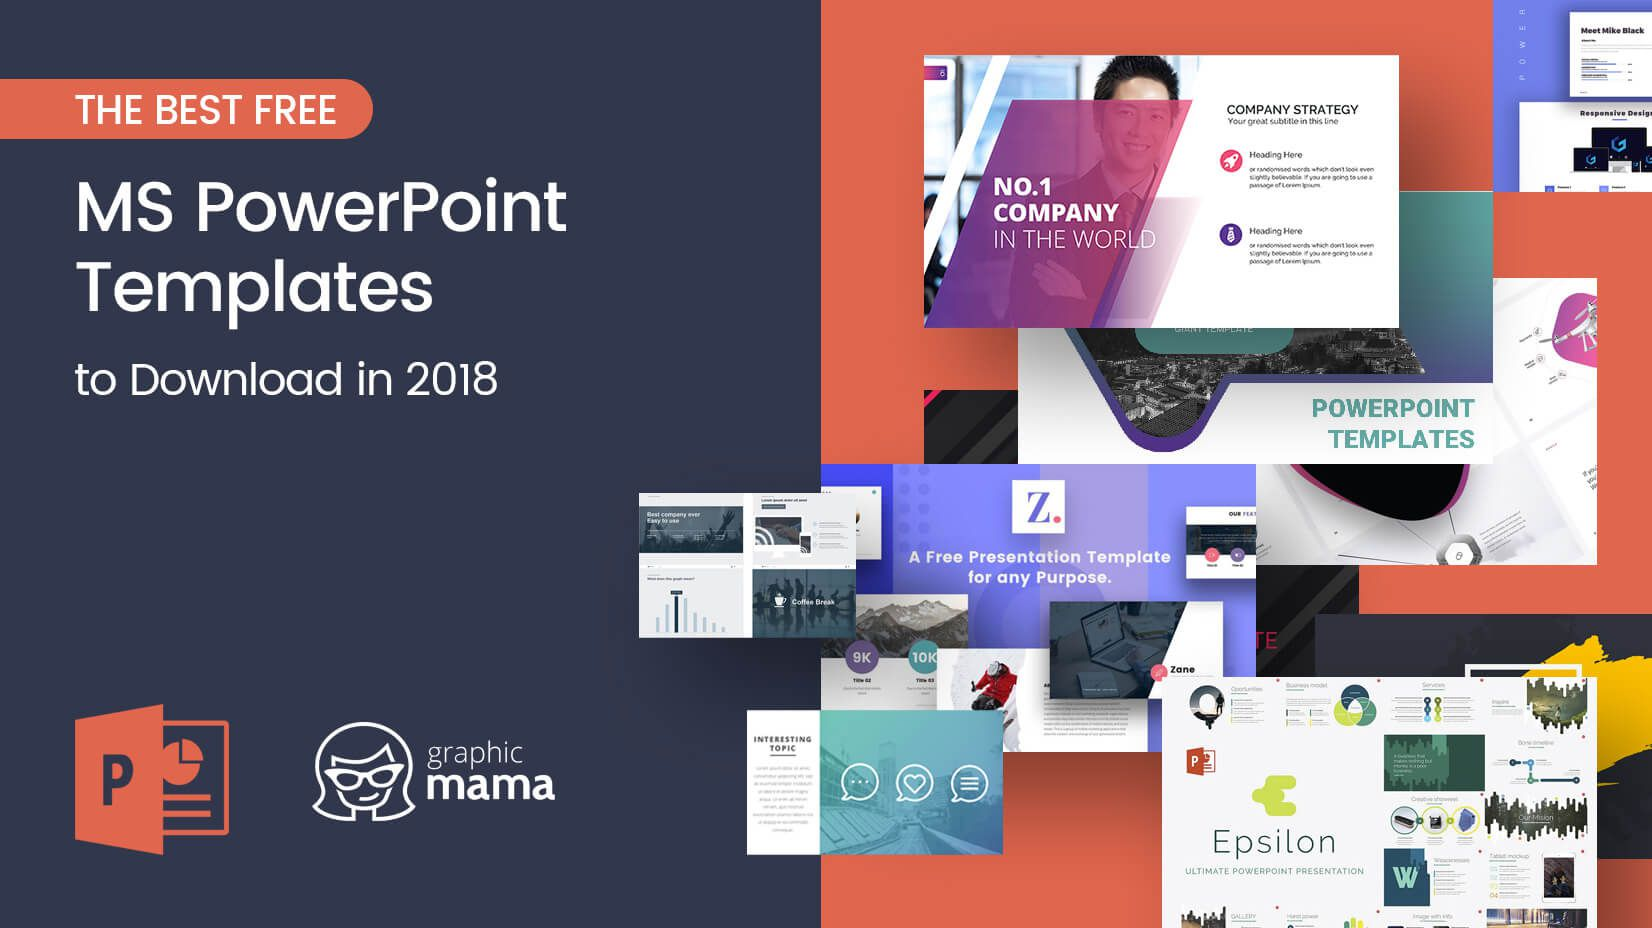 009 Awesome Power Point Presentation Template Free High Resolution  Powerpoint Layout Download 2019 Modern BusinesFull